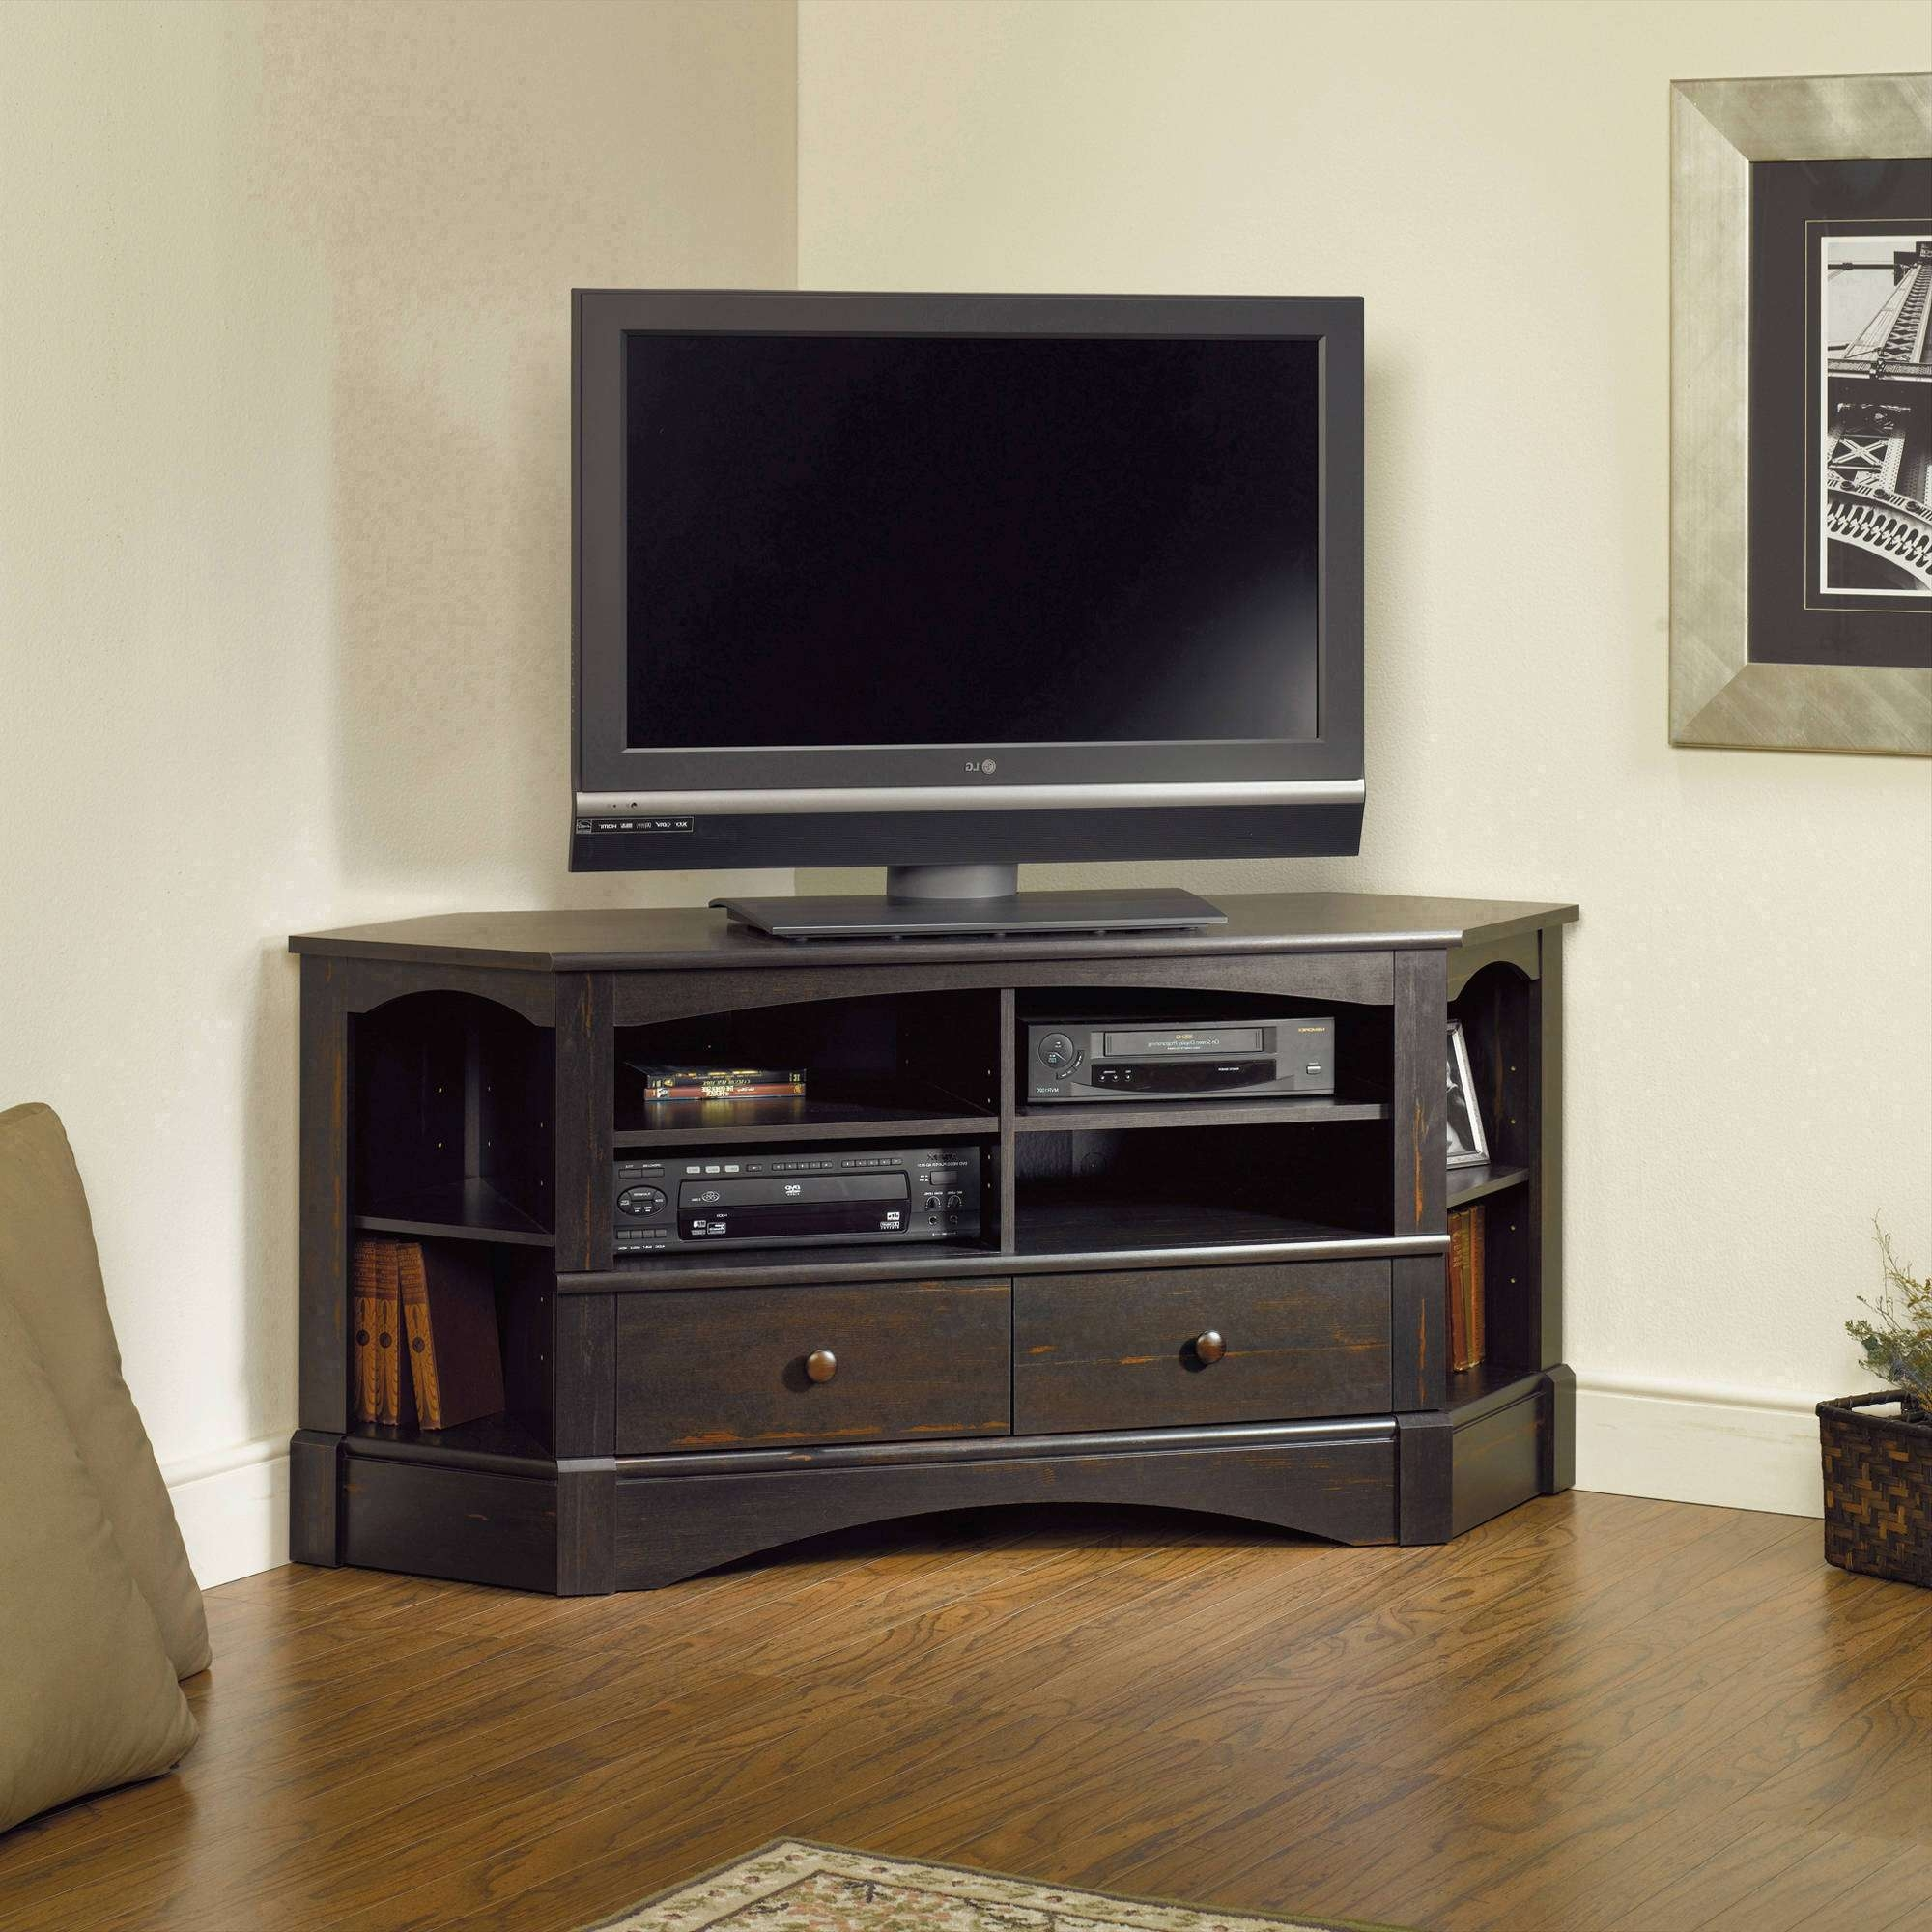 Tv Stand : 32 Unusual 55 Inch Corner Tv Stand With Mount Images Intended For Corner 60 Inch Tv Stands (View 11 of 15)